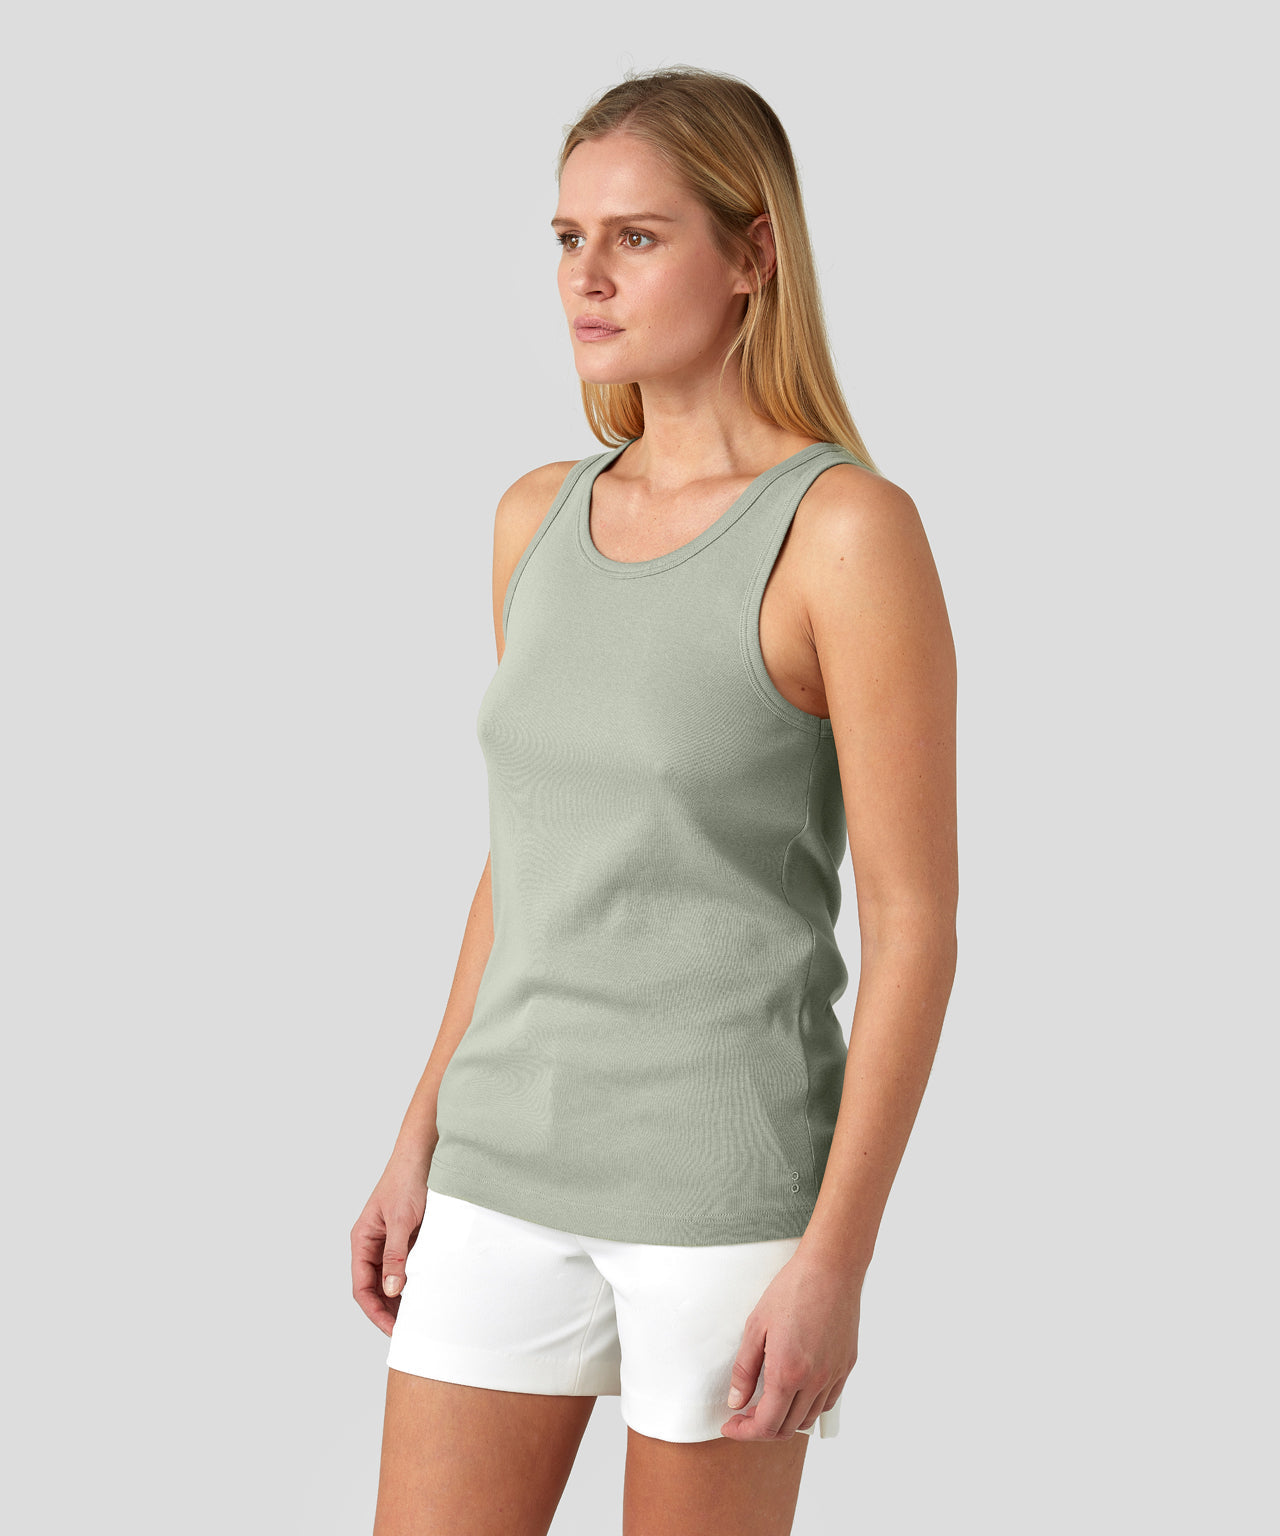 Underwear Tank Top His For Her - light khaki